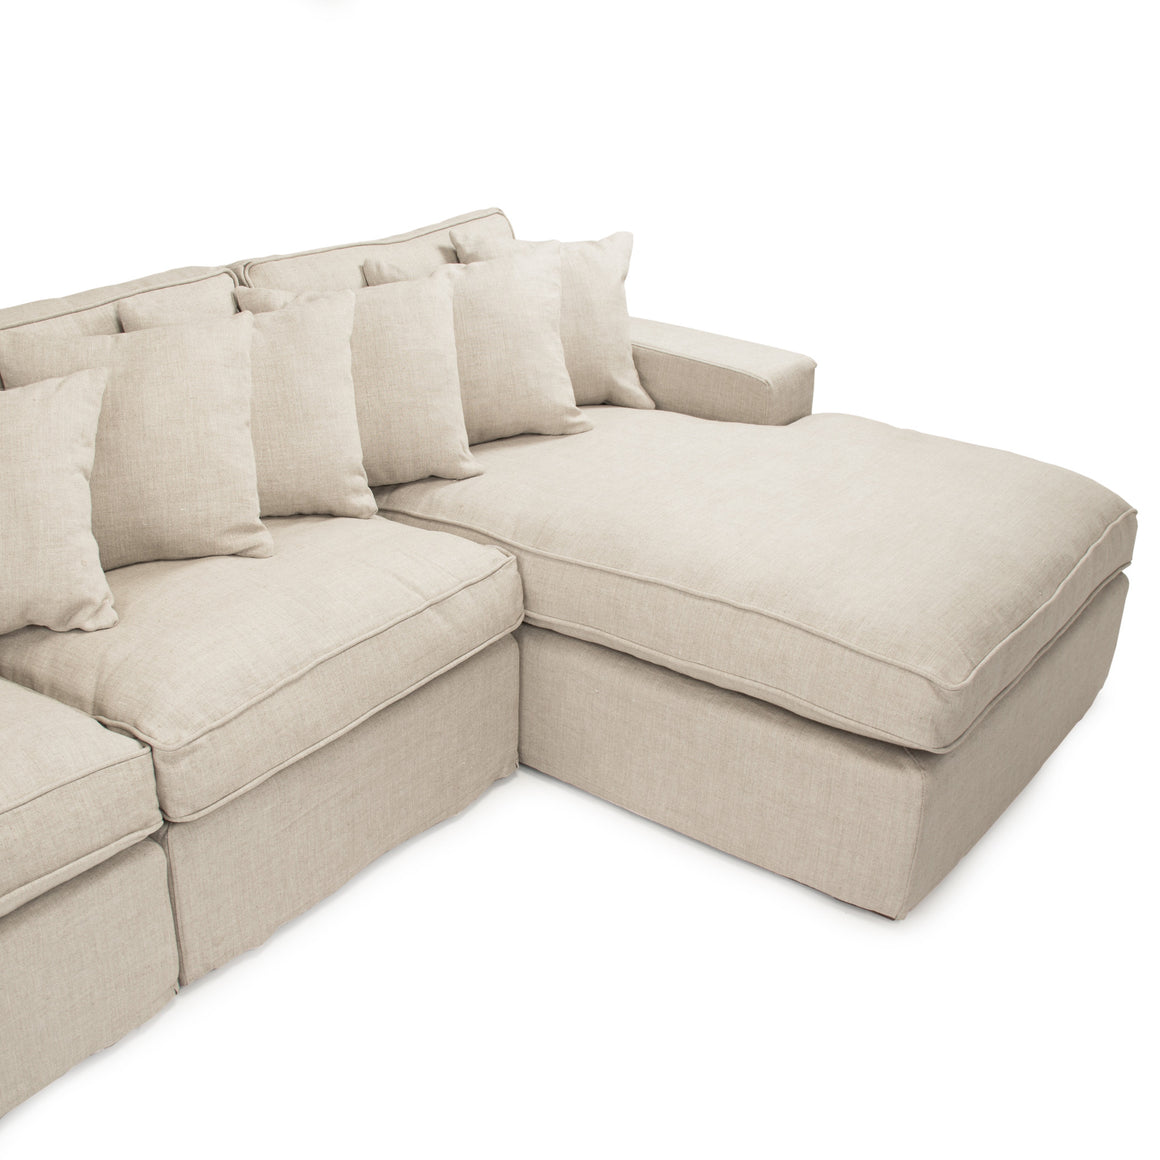 Sofa, Sectional - Chaud Sectional